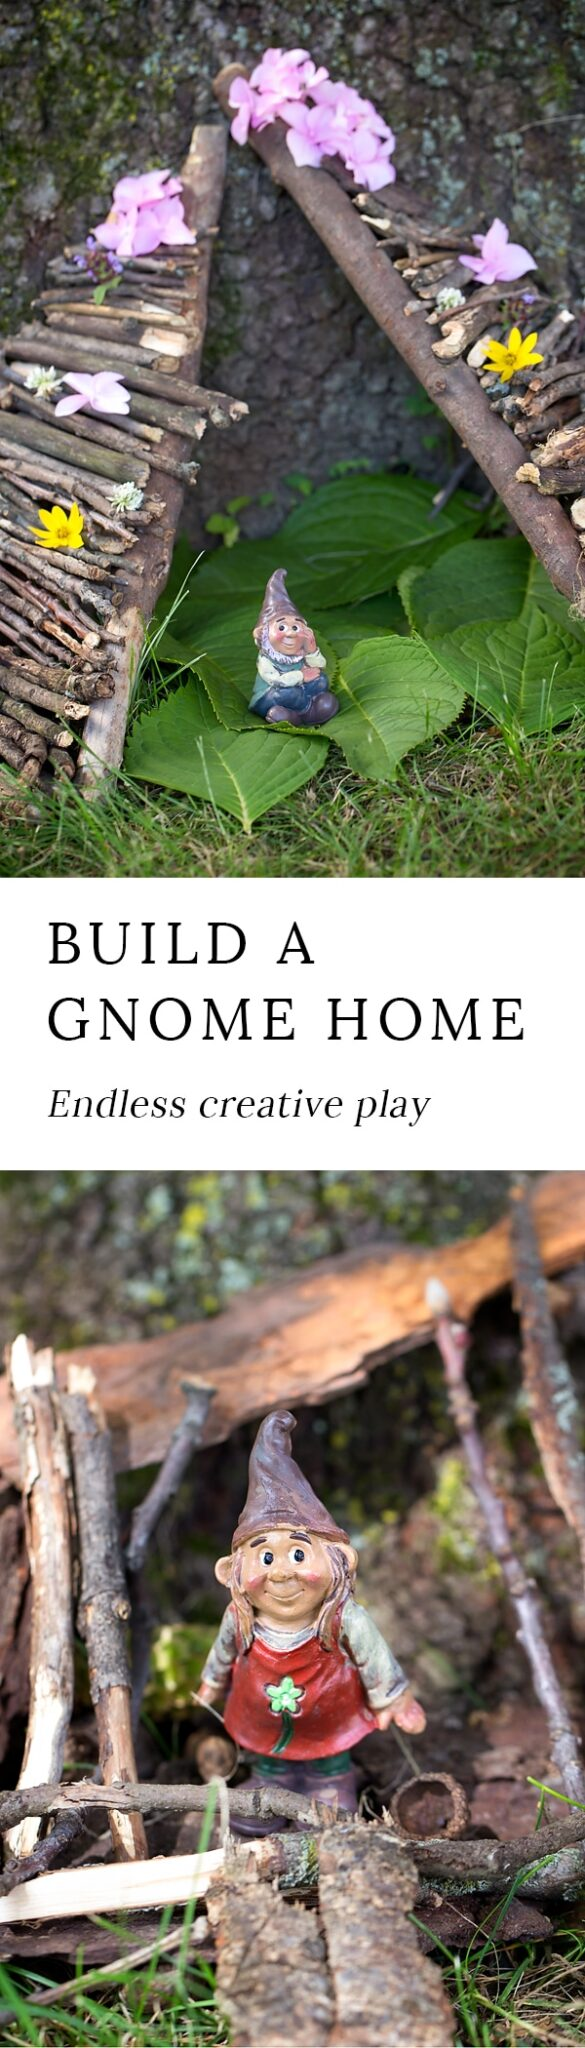 Backyard gnome homes invite children into a magical world where creative play is limitless. Get outside to play with your kids and release your inner child!